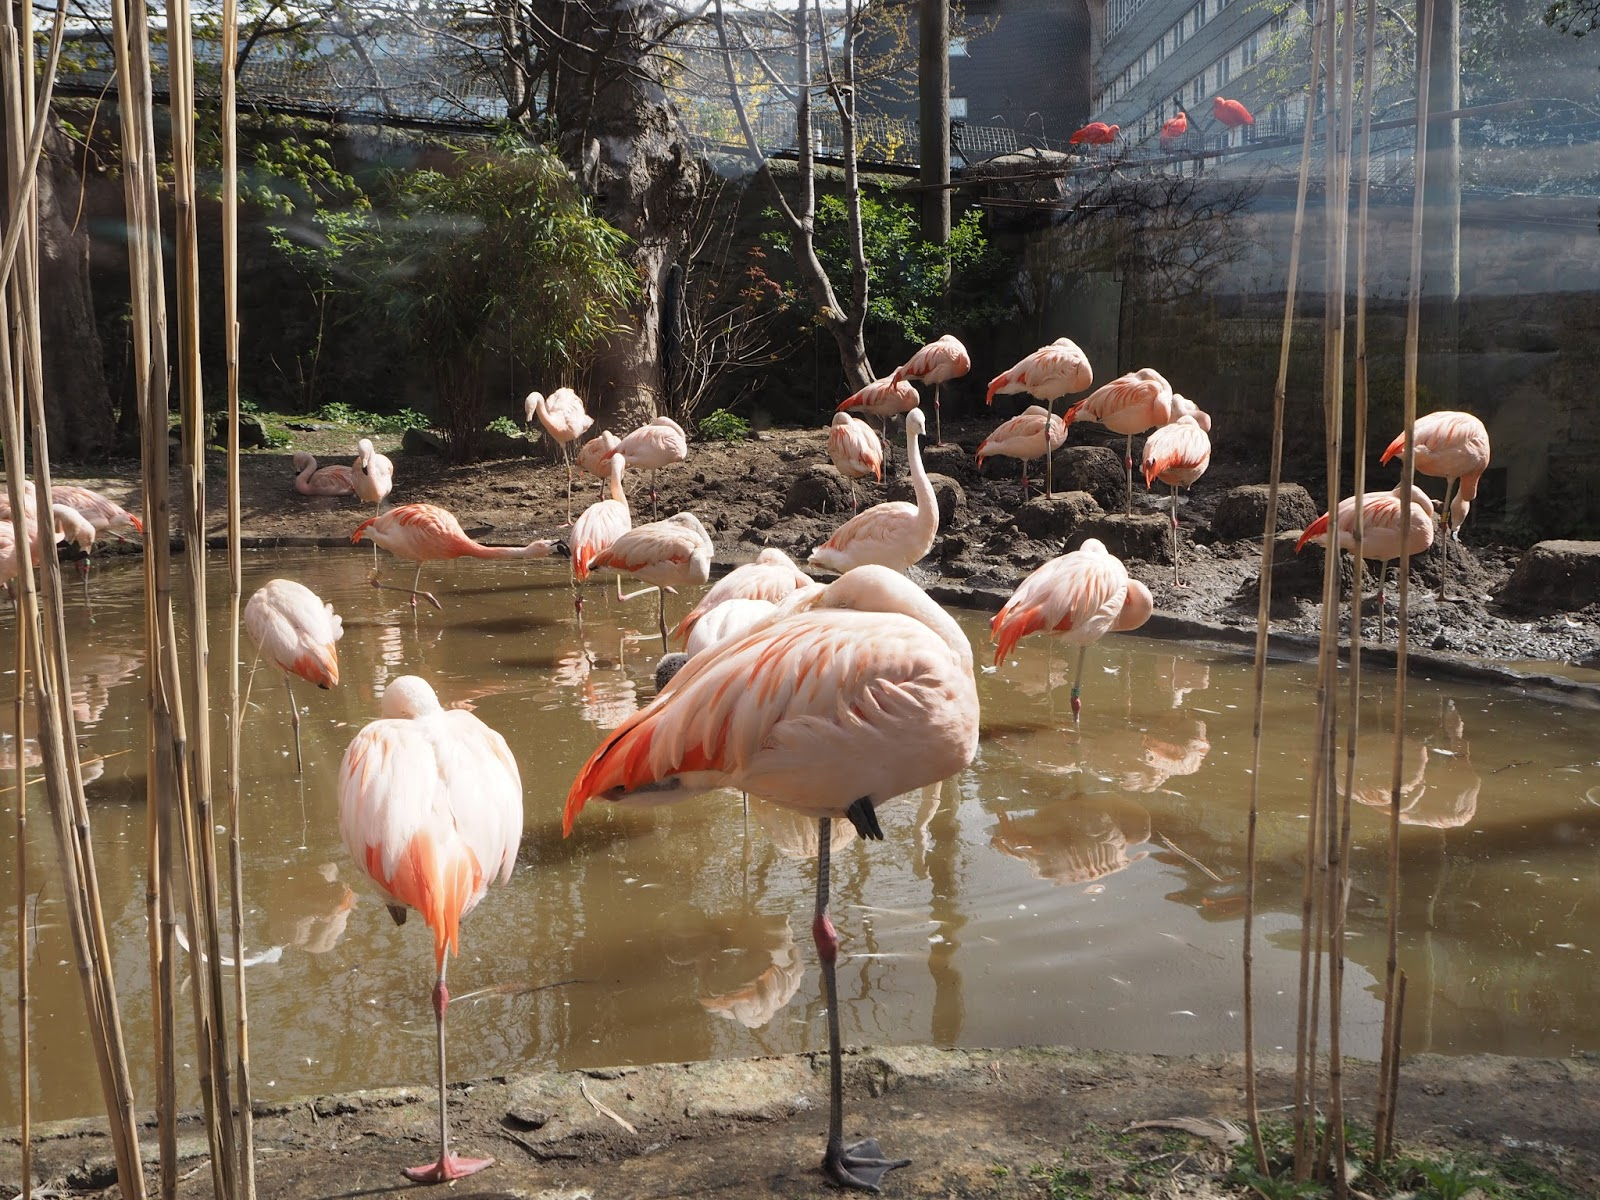 edinburgh zoo flamingo